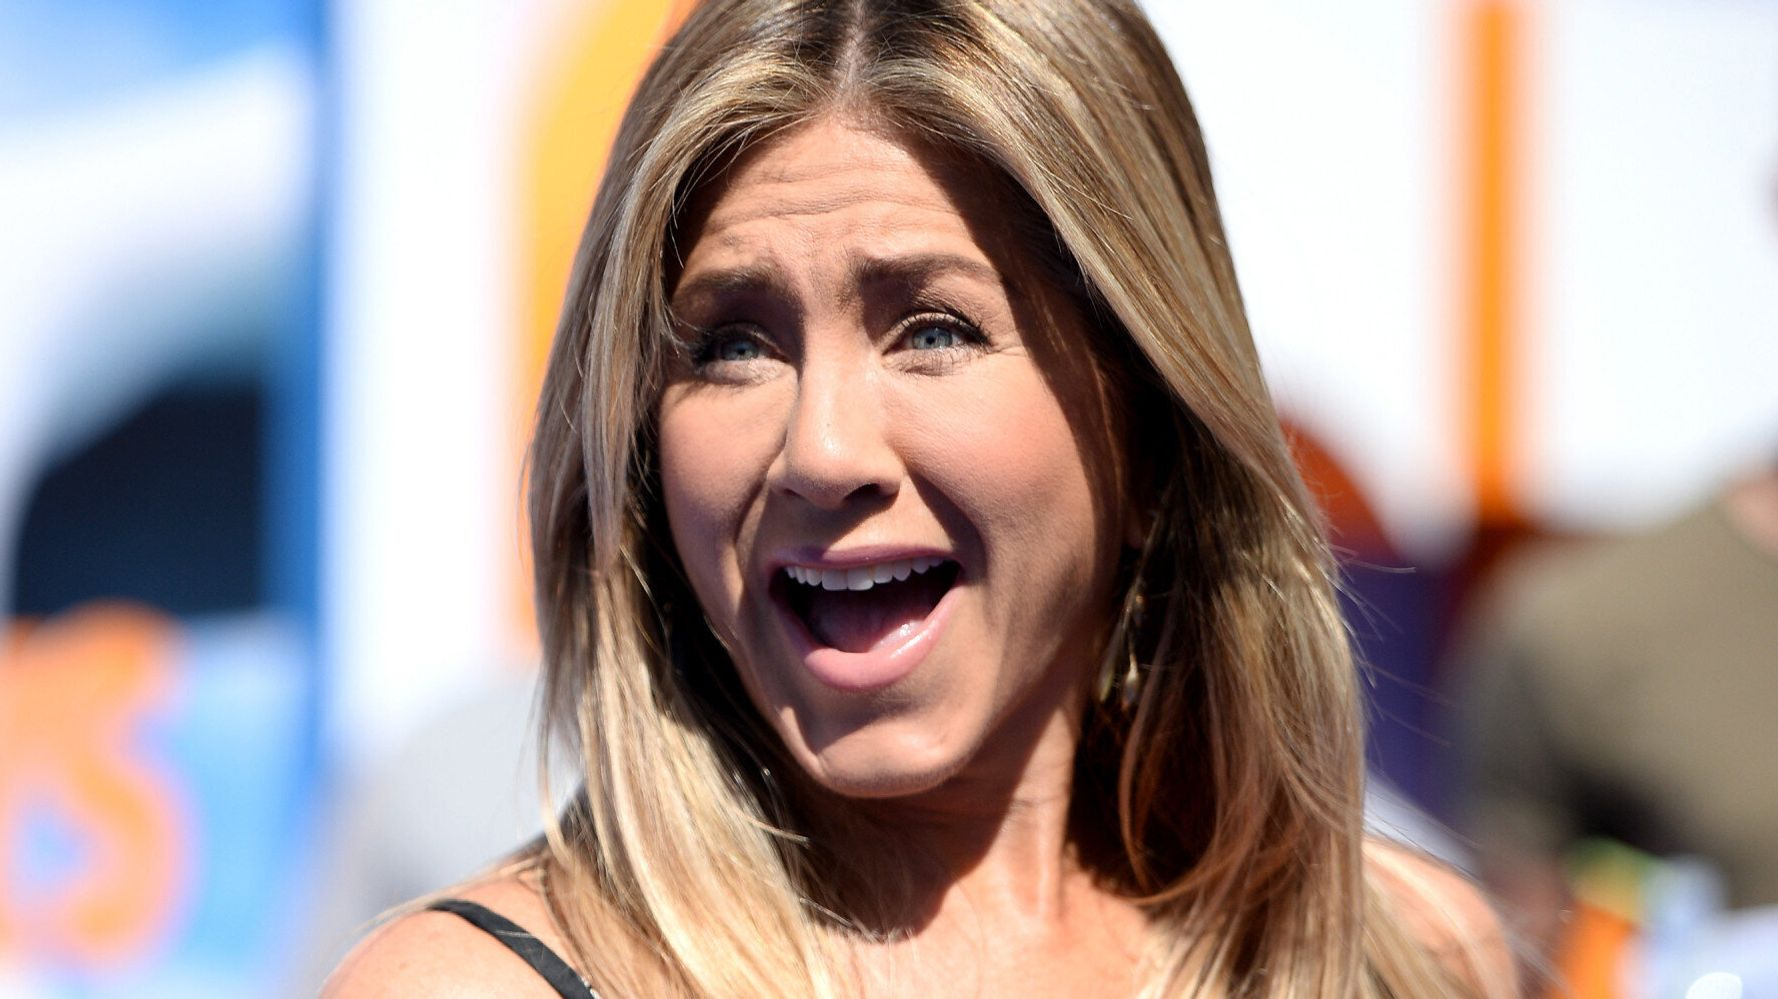 Jennifer Aniston Feels 'Incredible' About Turning 50 – But Still Doesn't Want Grey Hair